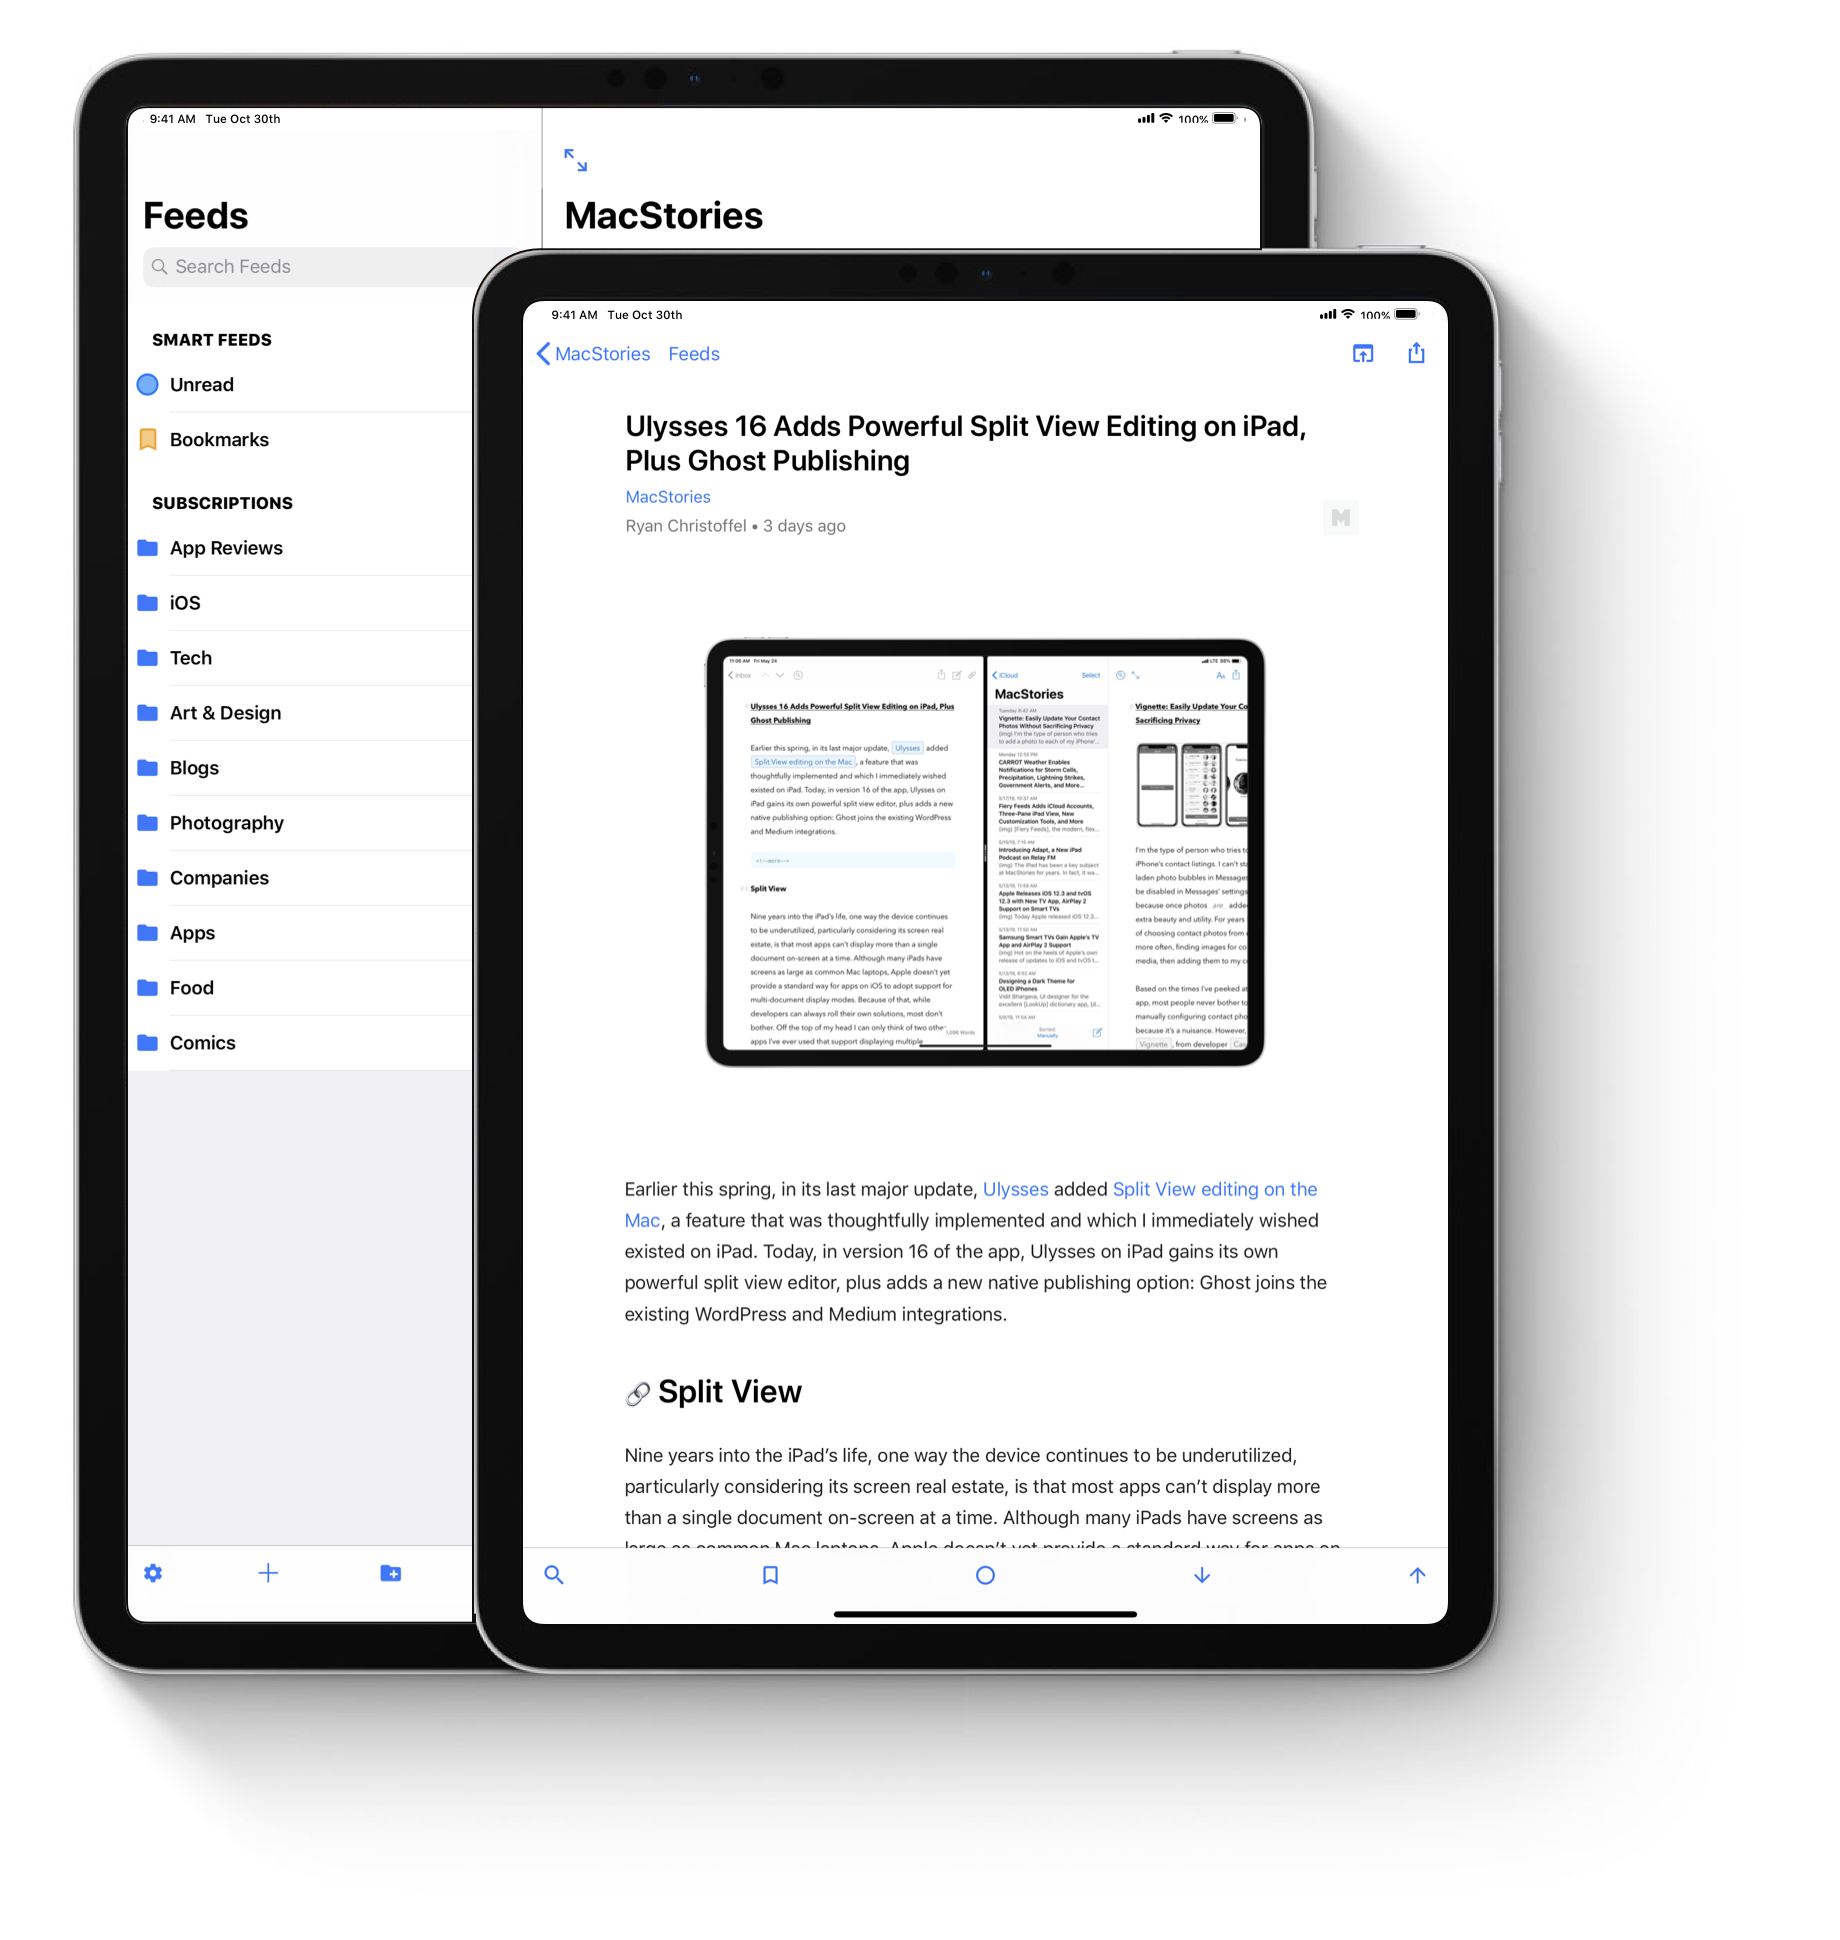 Toolbars on the primary interfaces on the iPad Pro 11 inches and 12.9 inches